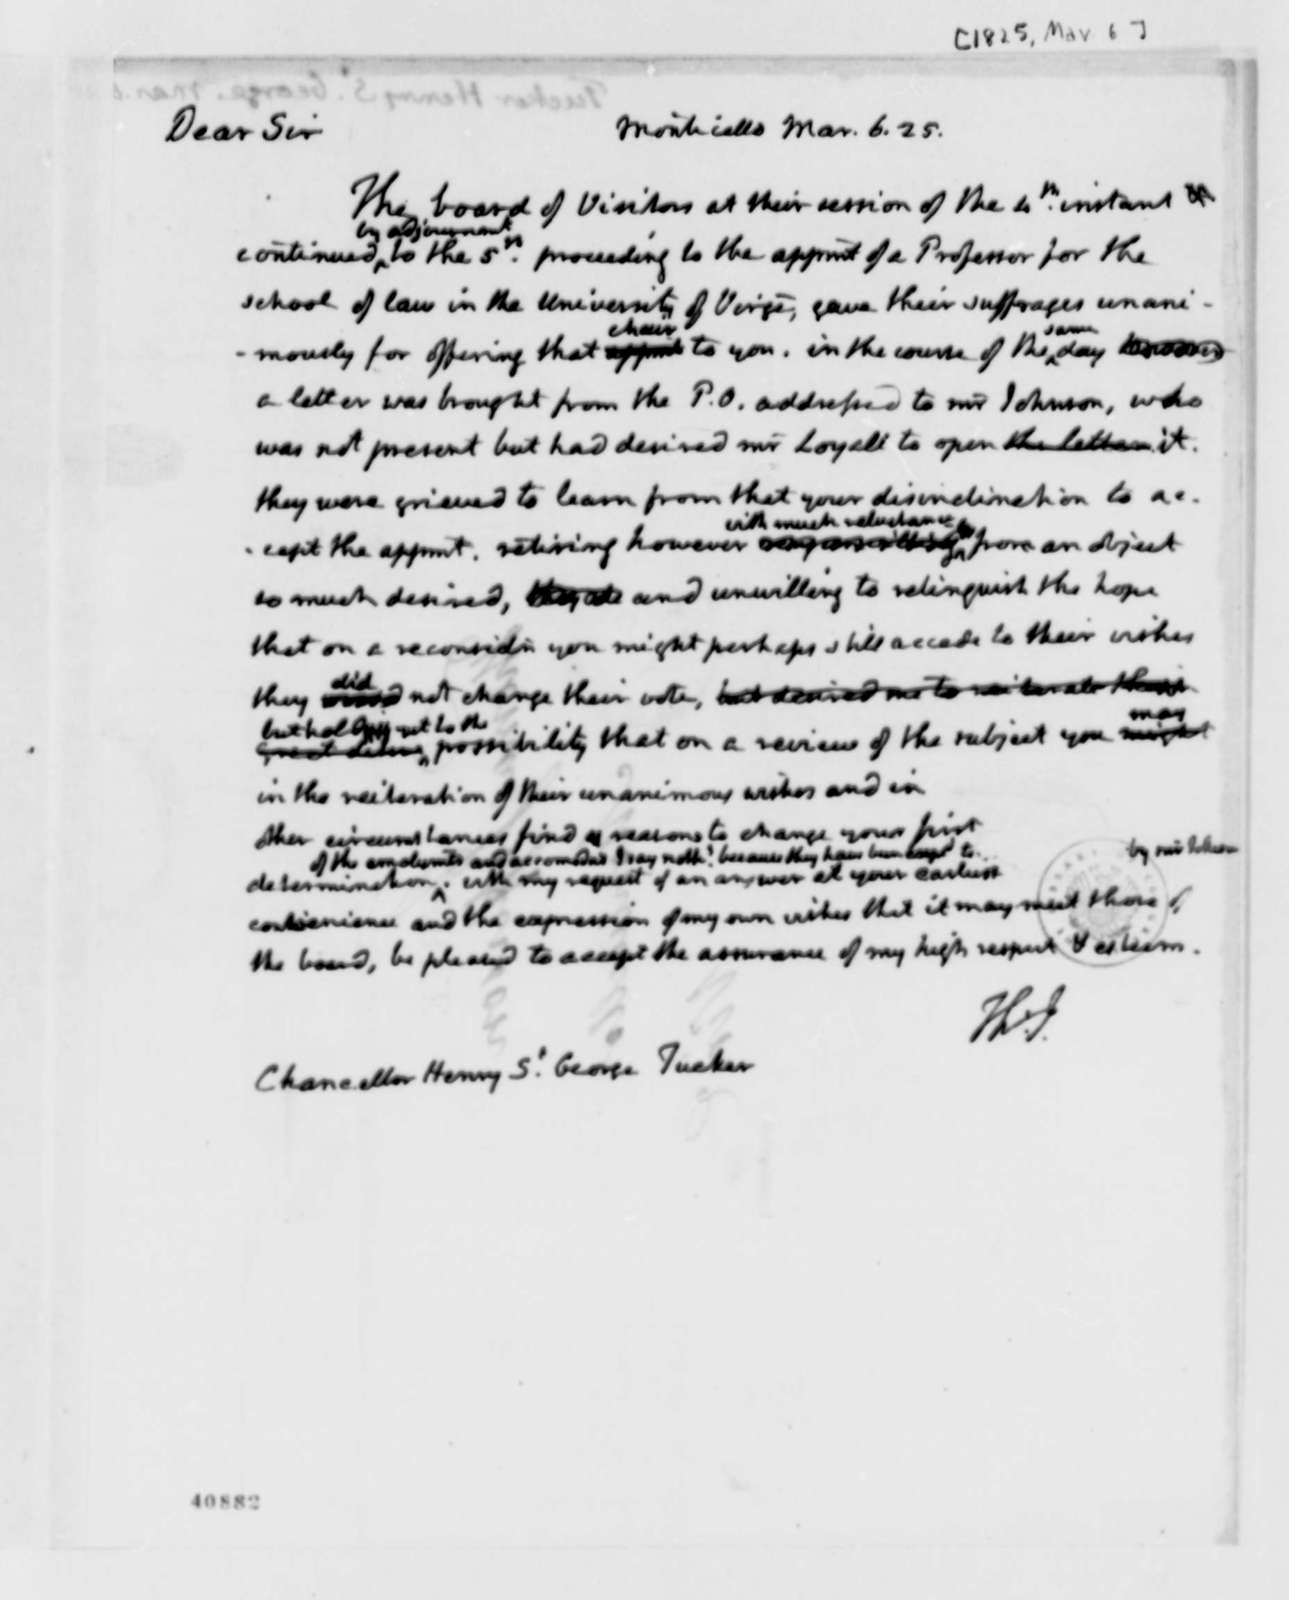 Thomas Jefferson to Henry St. George Tucker, March 6, 1825